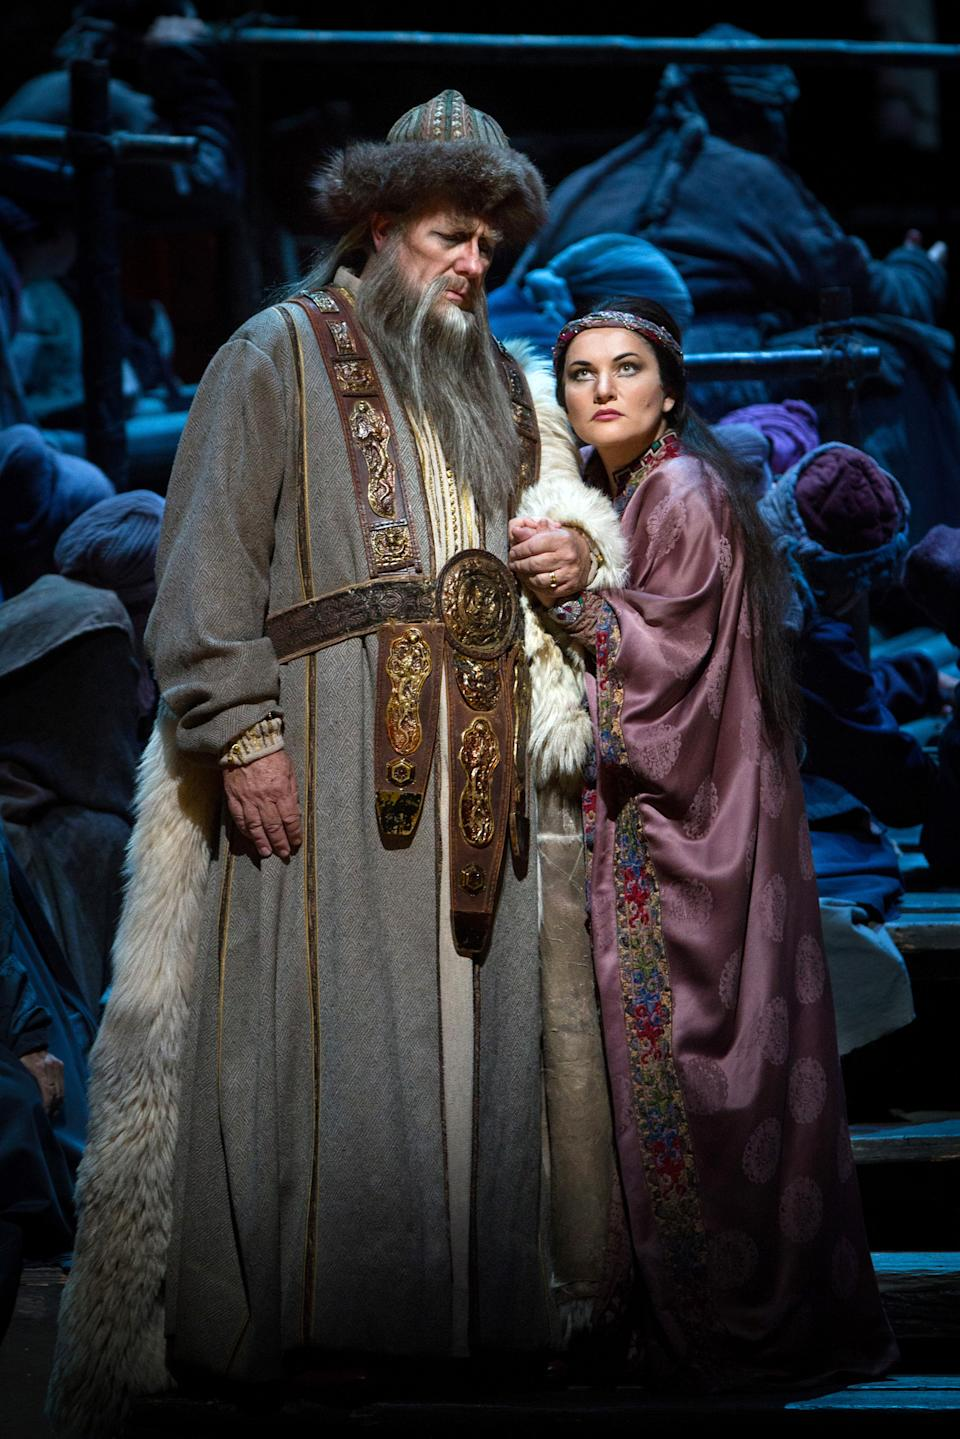 "This Sept. 13, 2012, photo provided by the Metropolitan Opera shows James Morris as Timur with Hilba Gerzmava as Liu a scene from Puccini's ""Turandot,""  during a dress rehearsal at the Metropolitan Opera in New York. (AP Photo/Metropolitan Opera, Marty Sohl)"